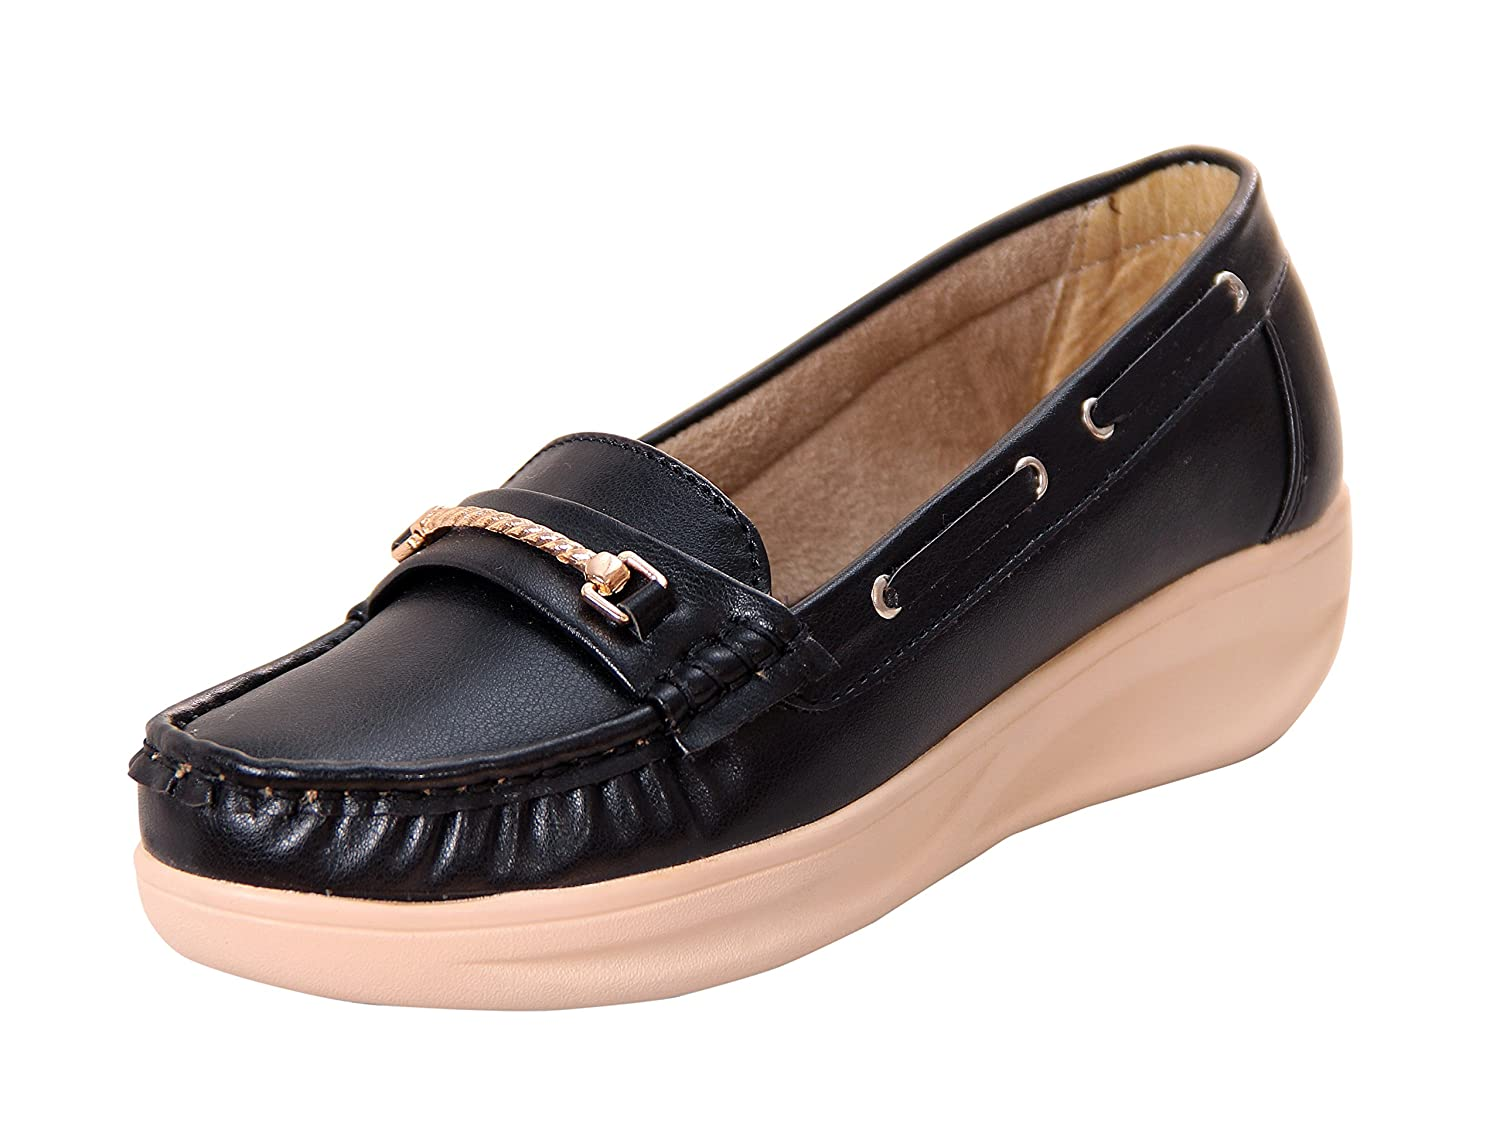 Lightweight Loafers at Amazon